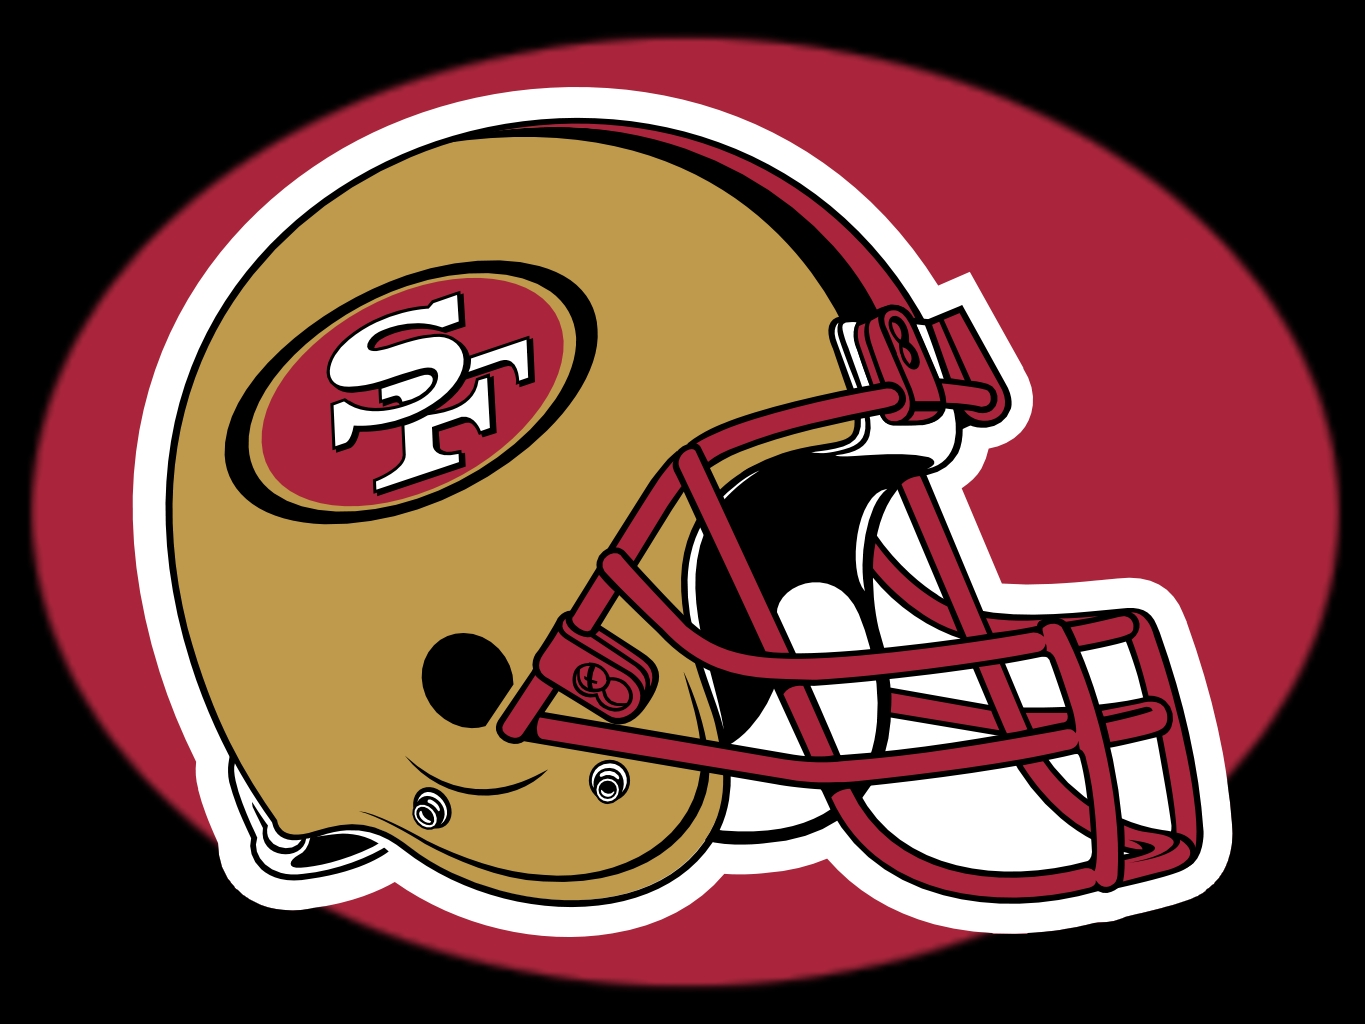 49ers helmet clipart picture royalty free Free 49Ers Cliparts, Download Free Clip Art, Free Clip Art on ... picture royalty free